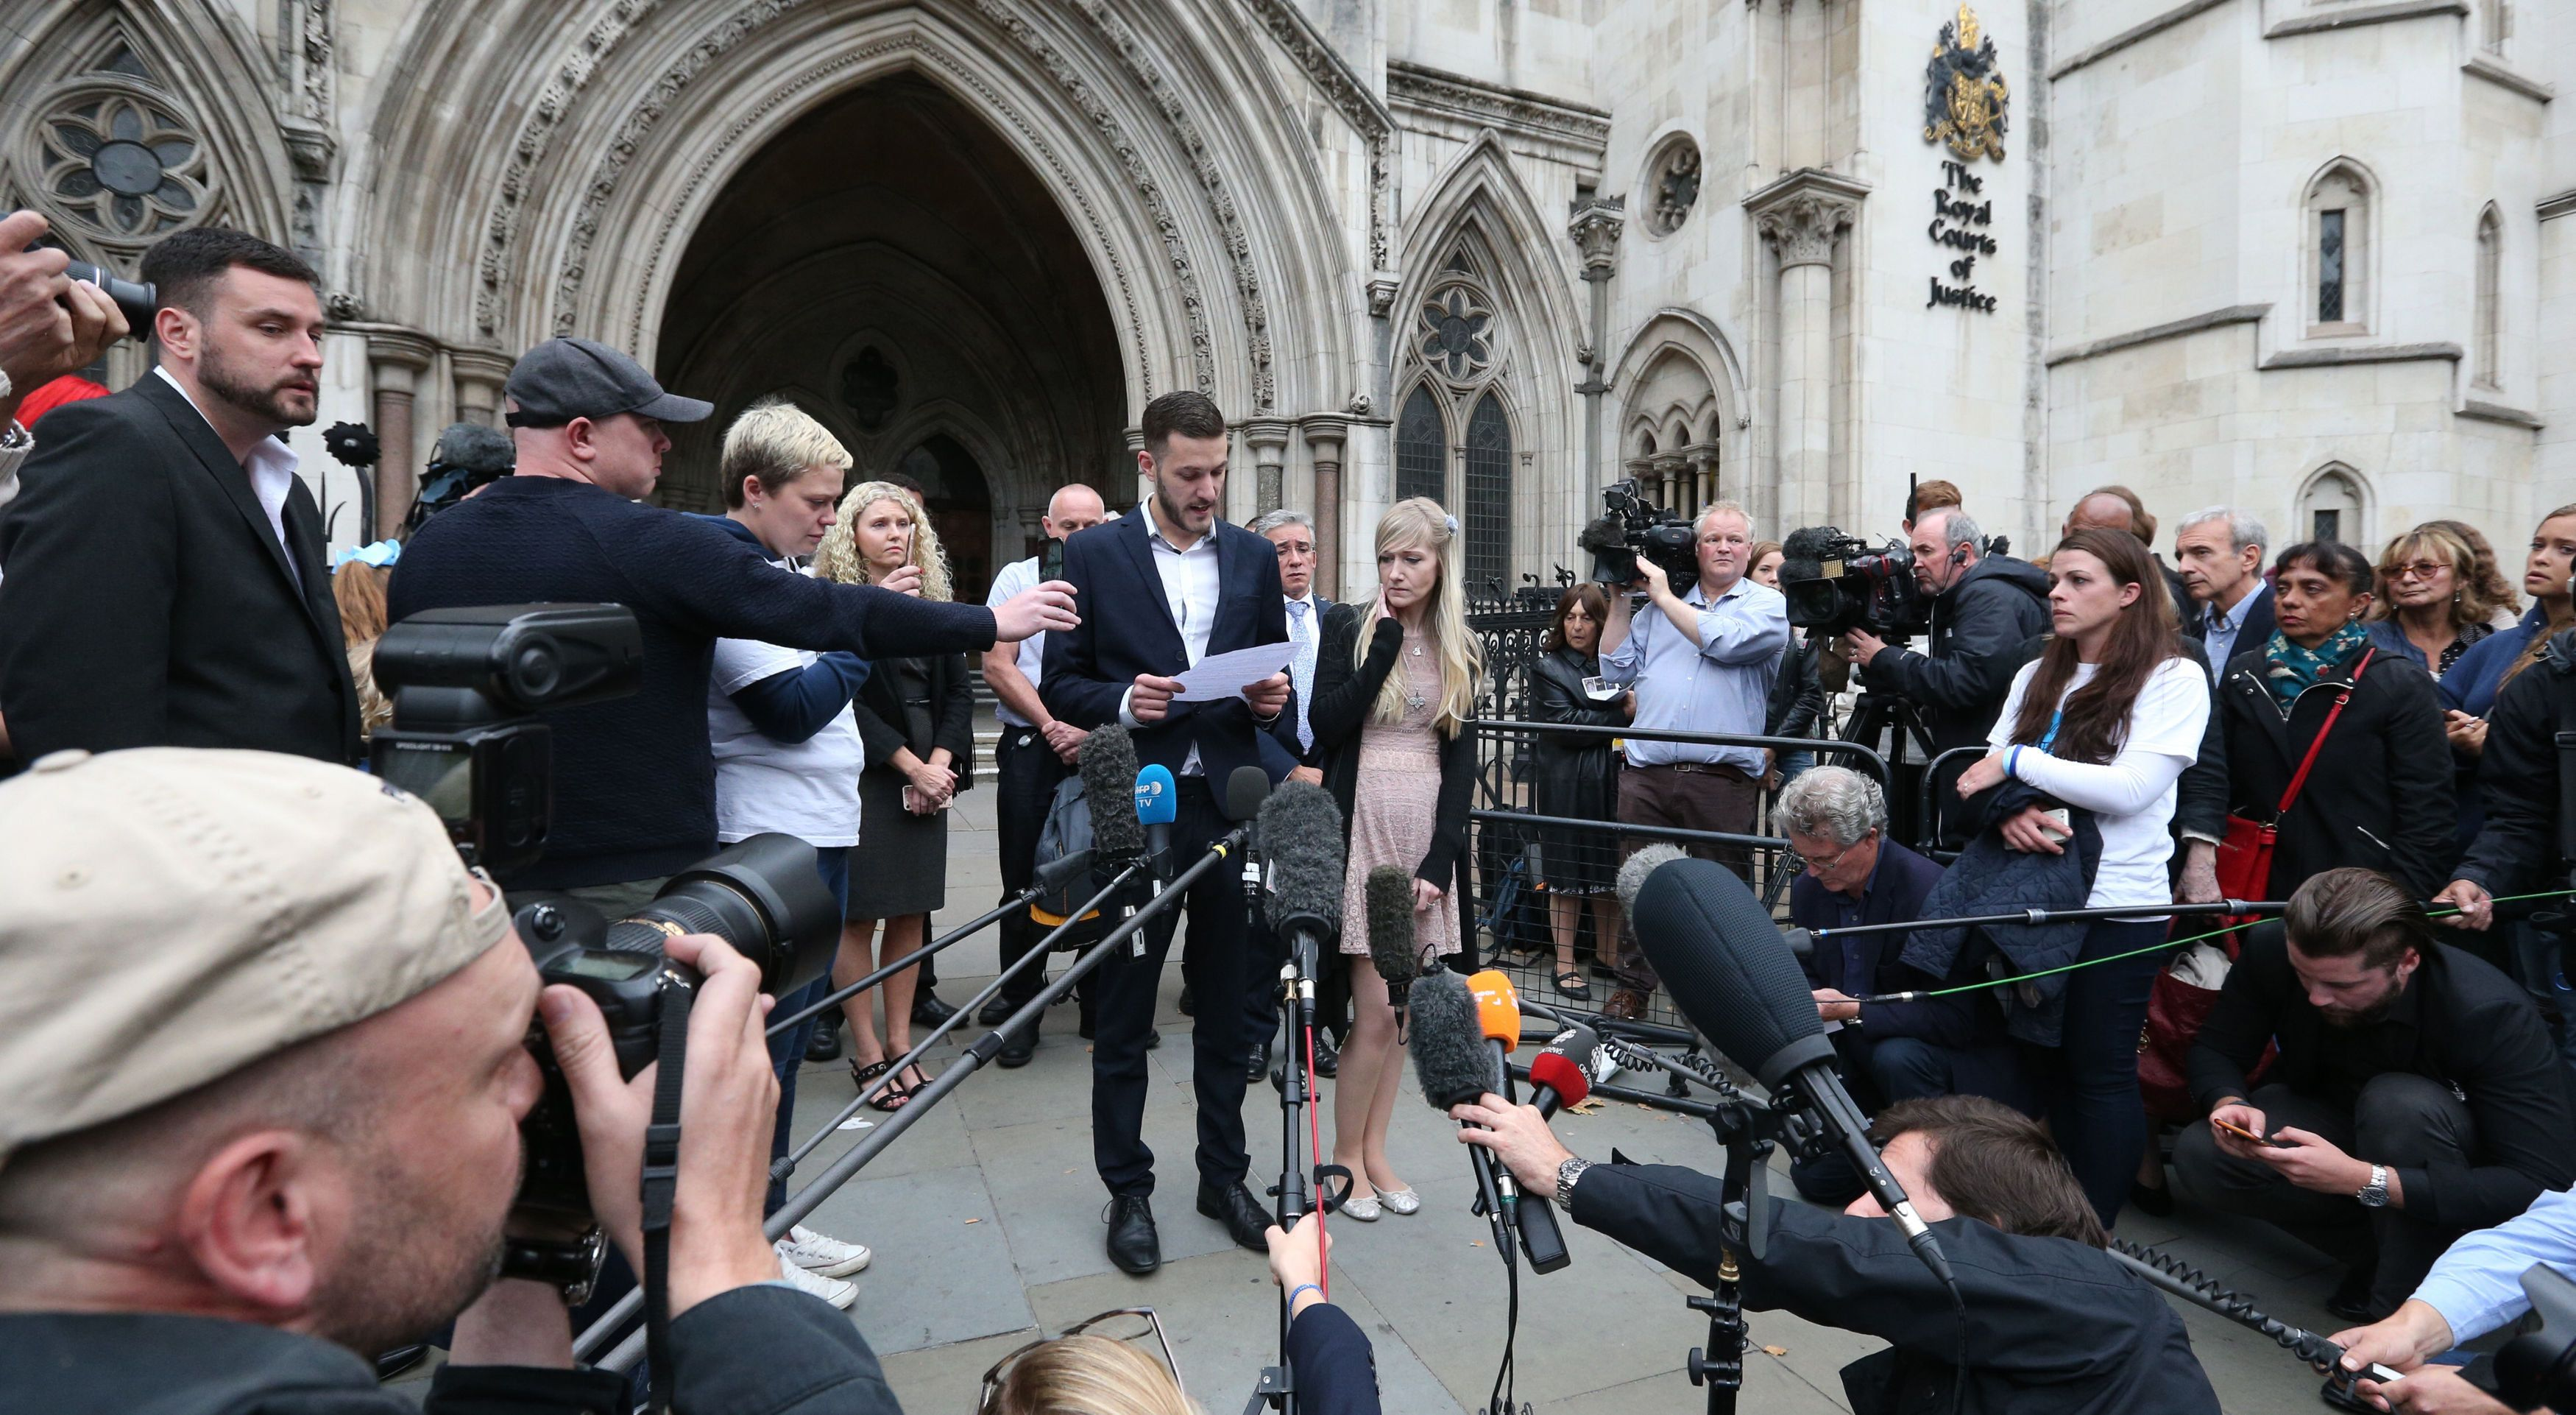 Charlie Gard: Noon deadline for deciding where terminally ill baby dies